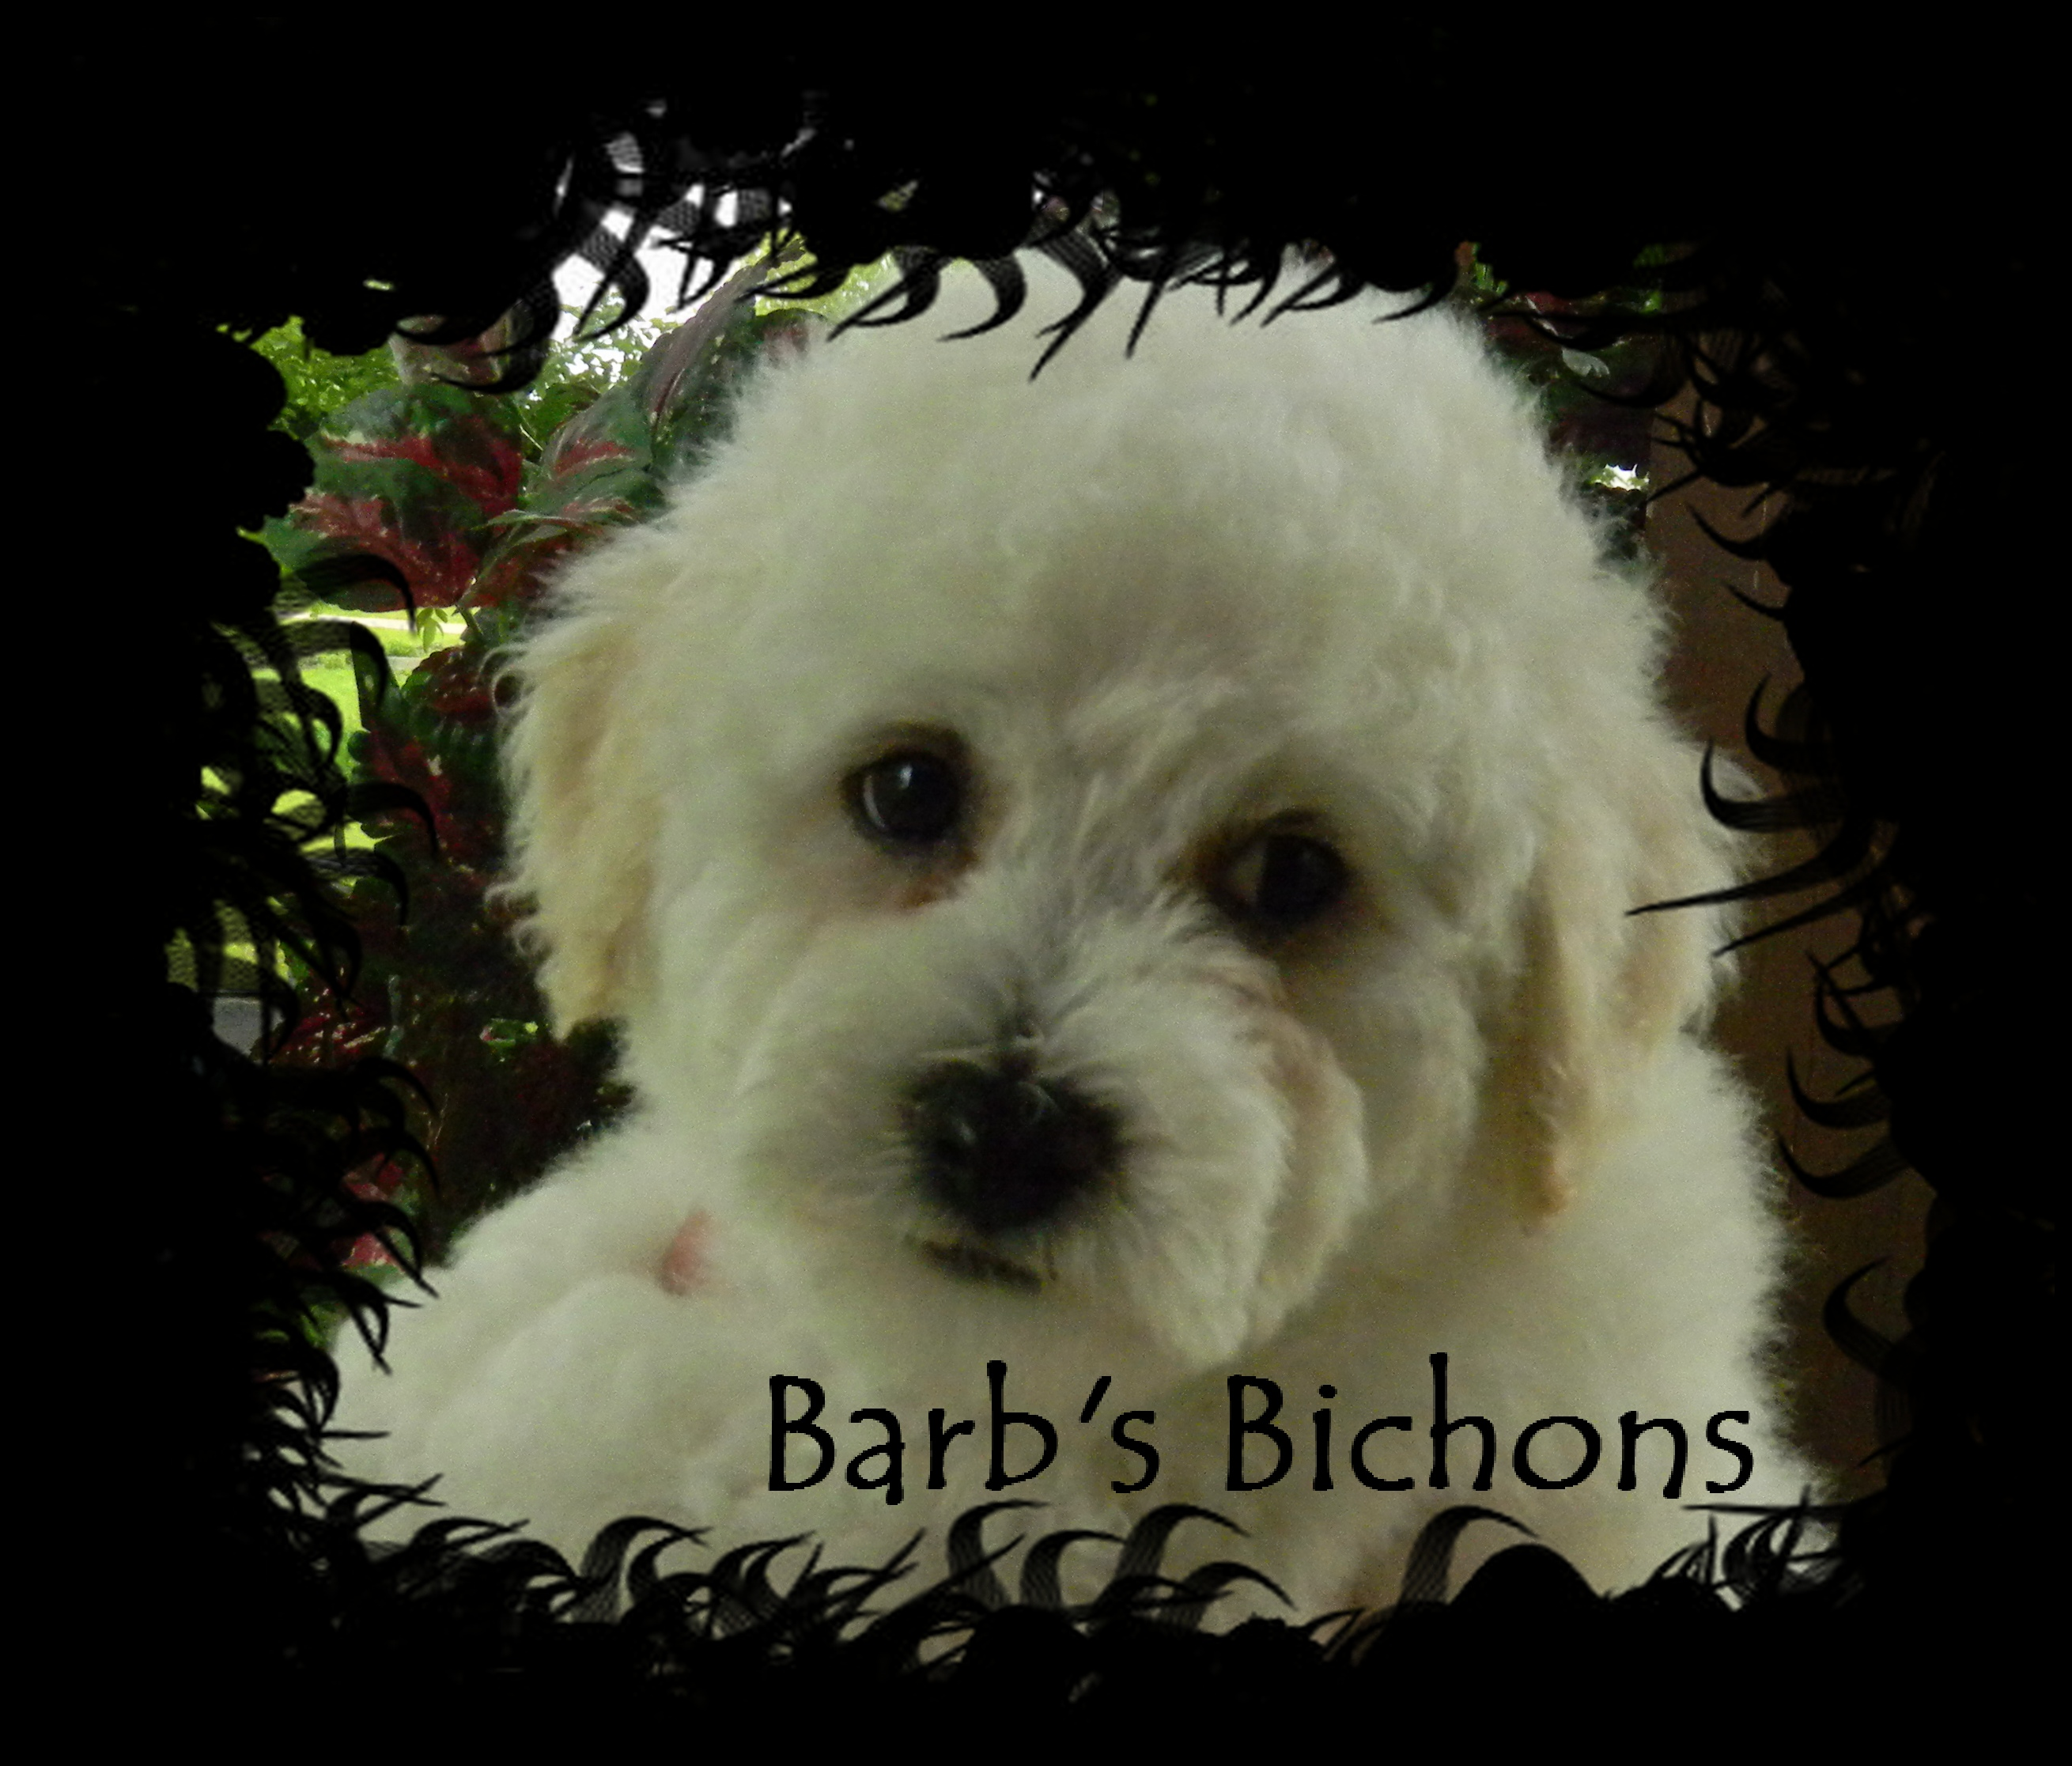 Bichon Frise puppies in Illinois